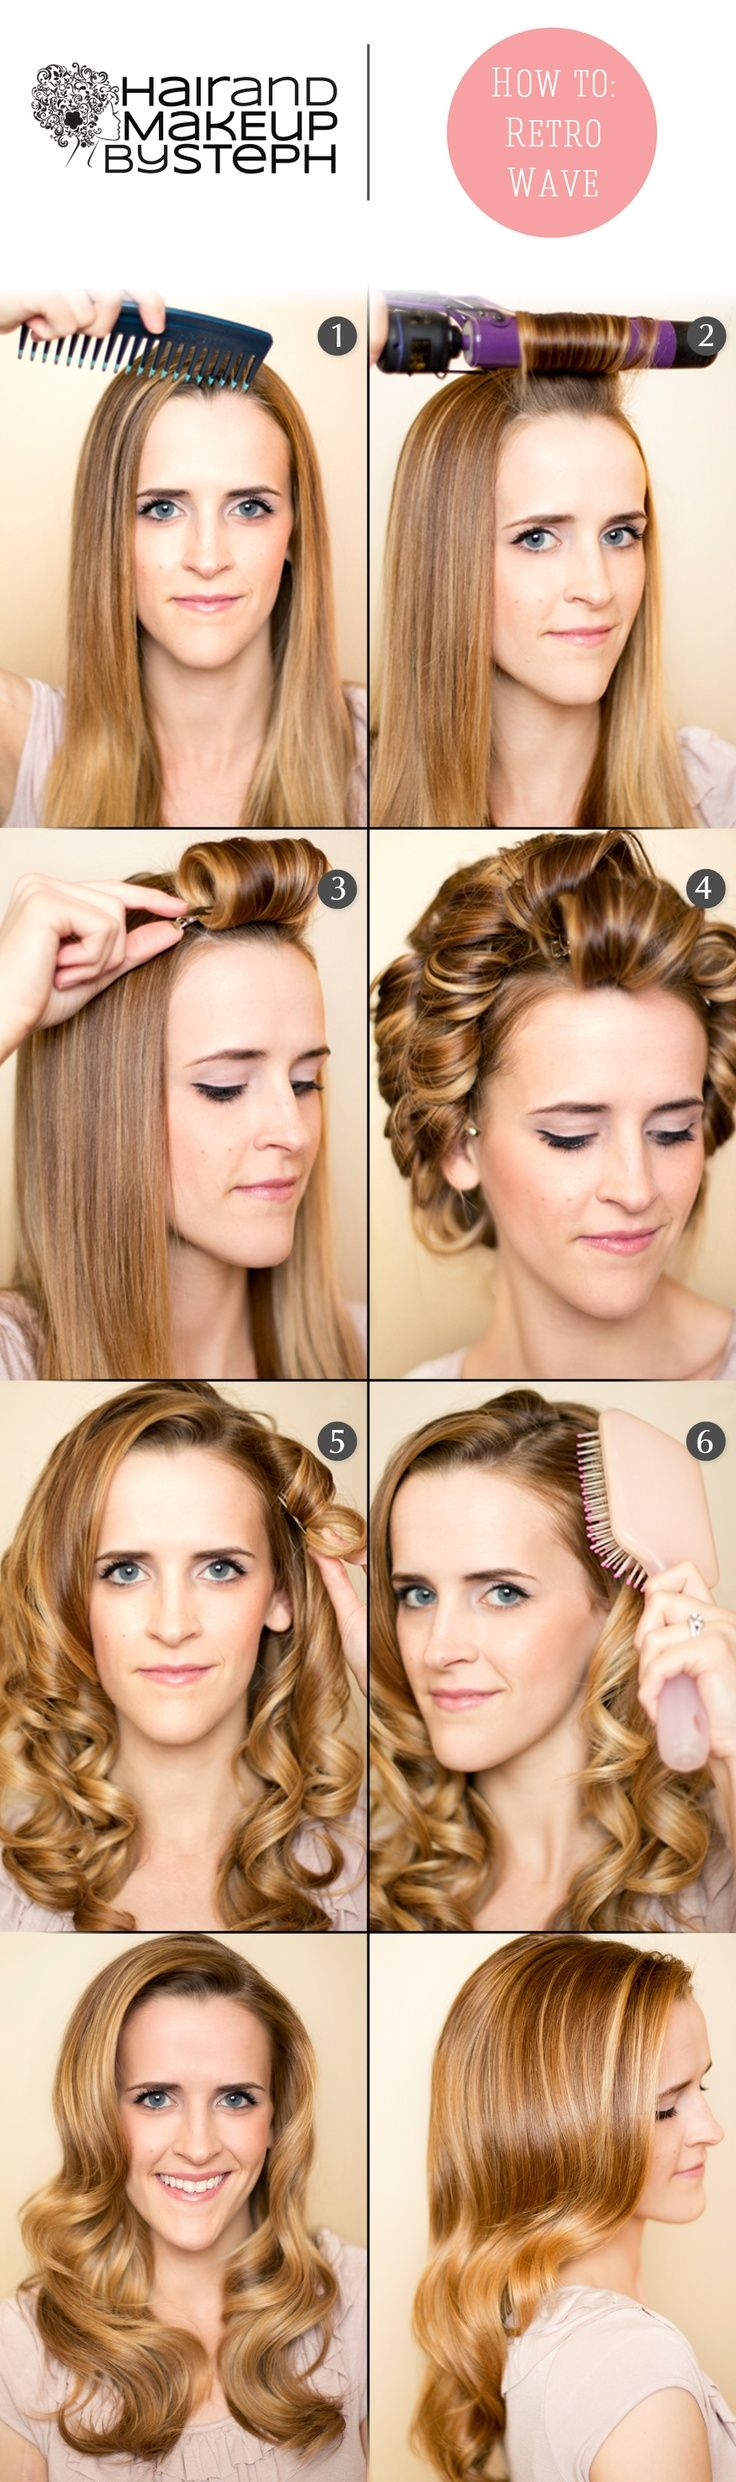 DIY Retro Curls Tutorials